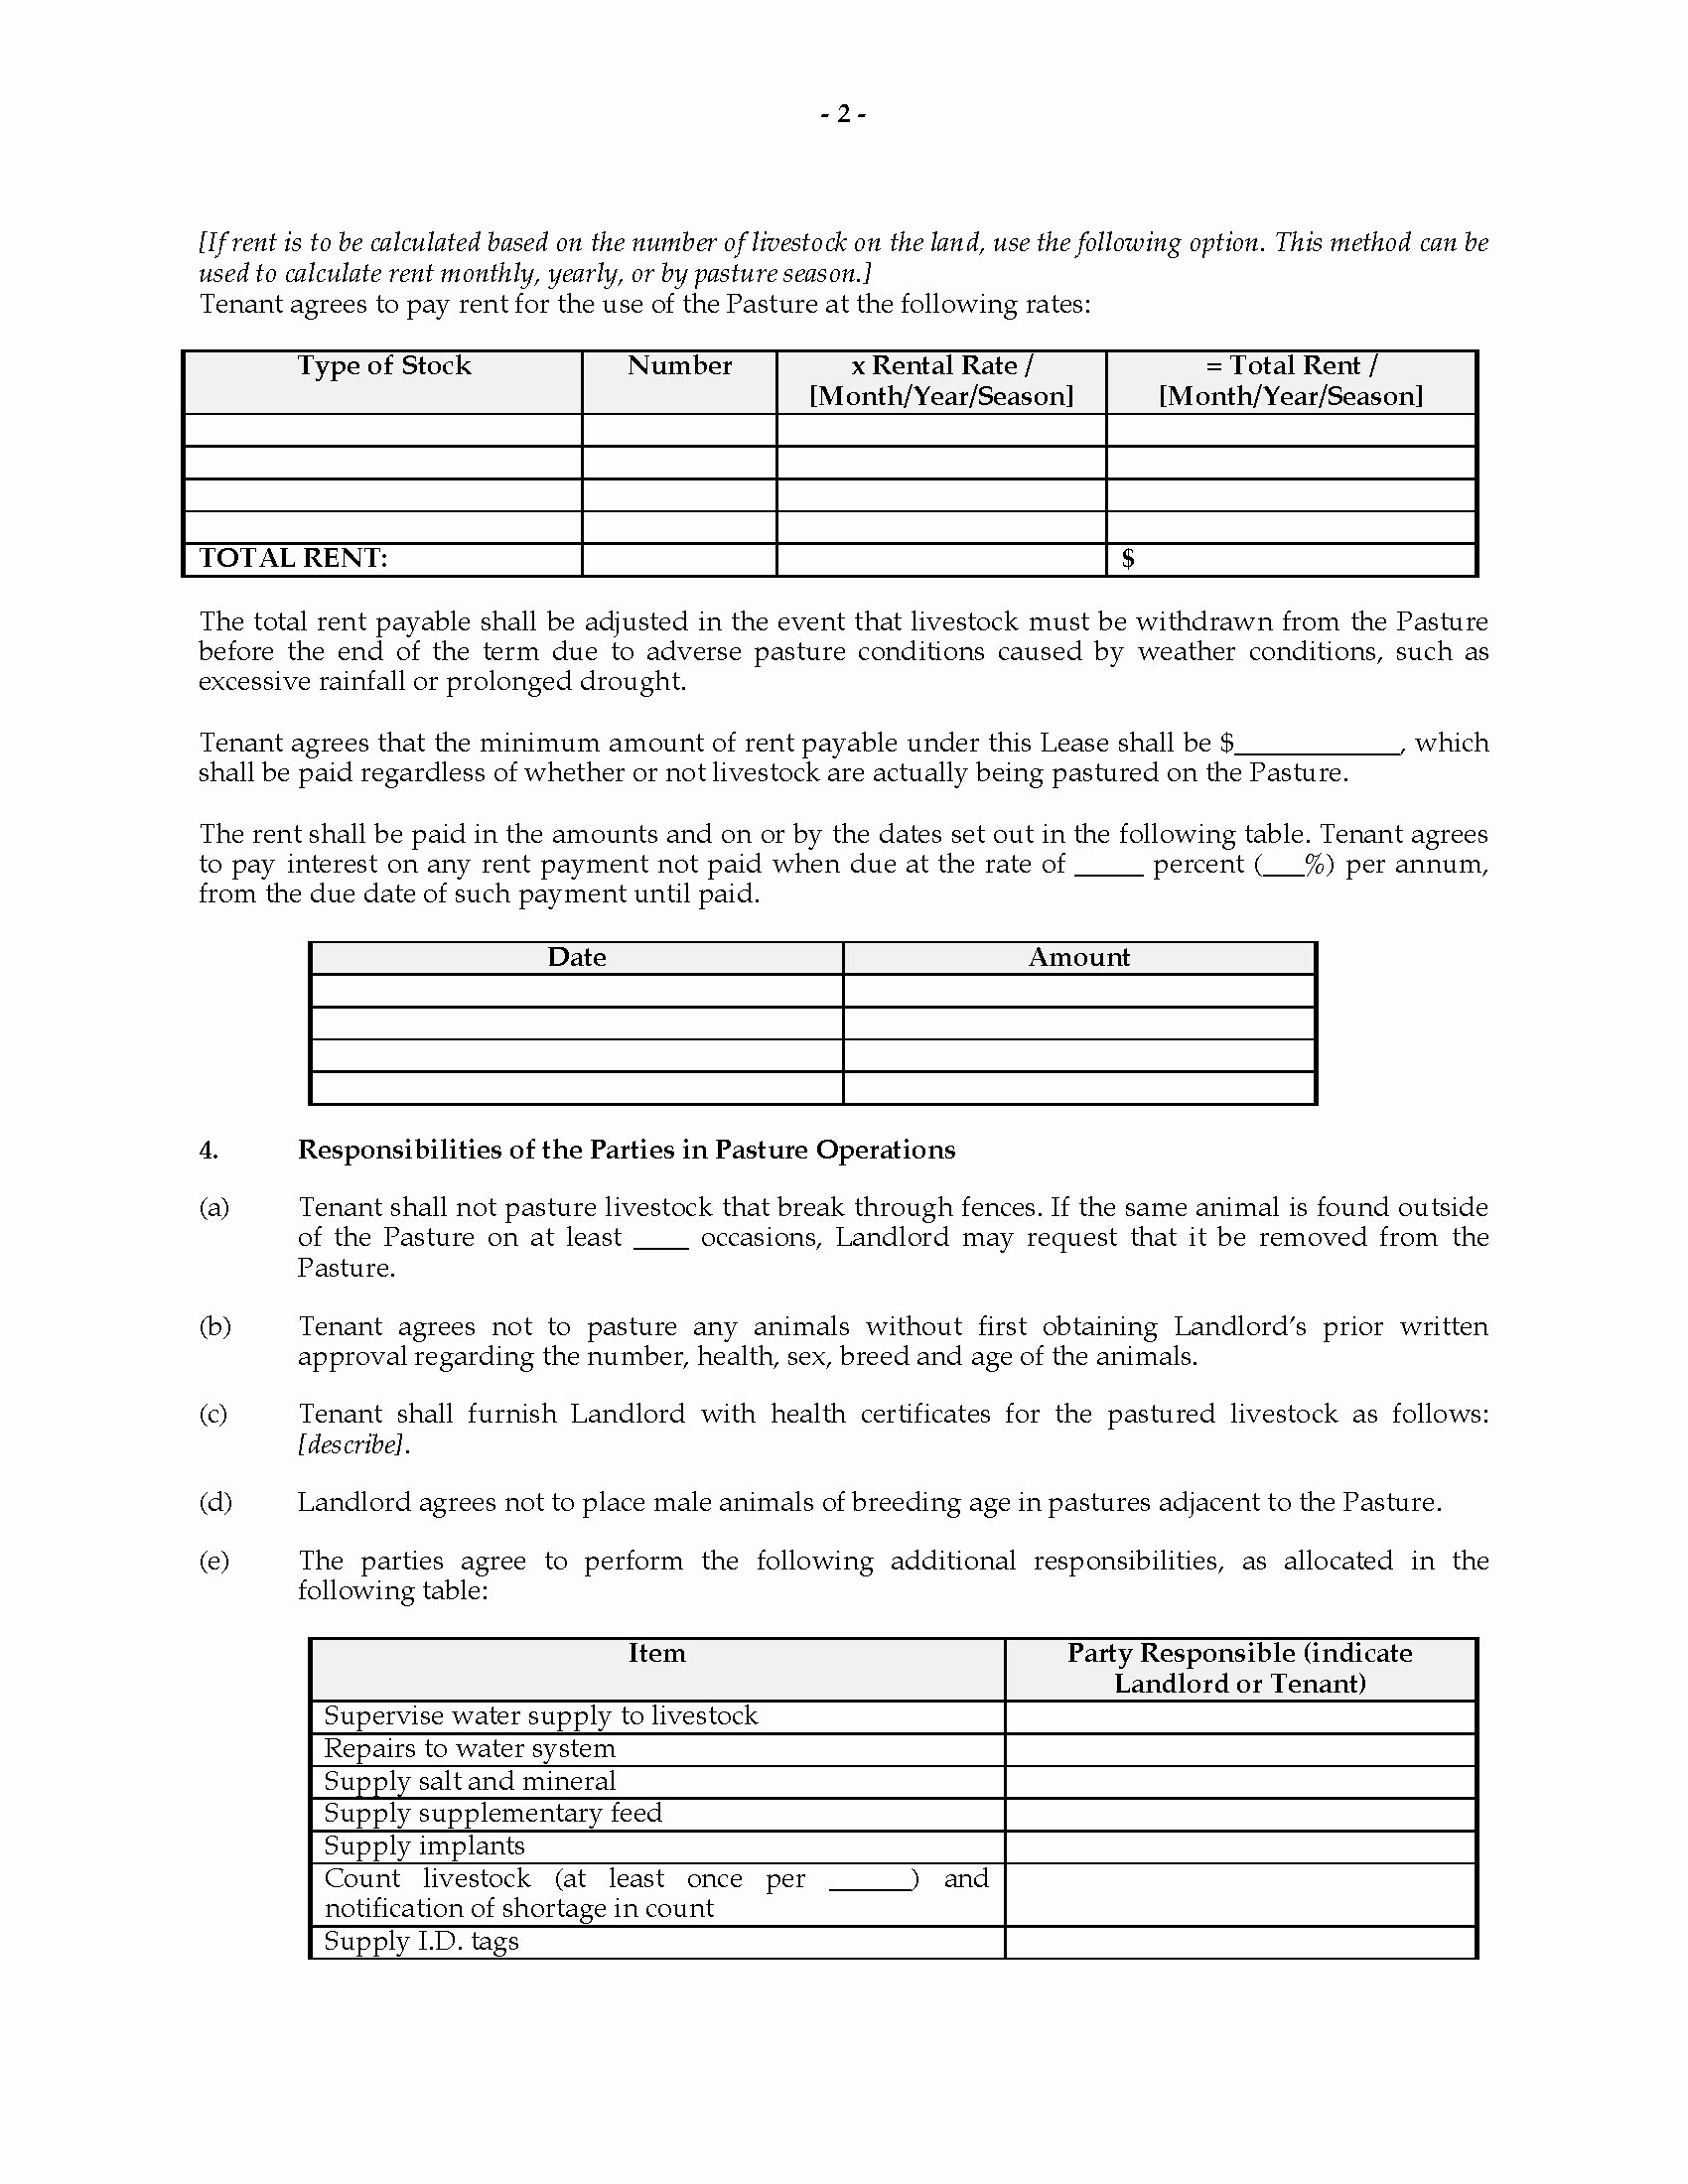 Pasture Lease Agreement Template Awesome Tario Pasture Lease